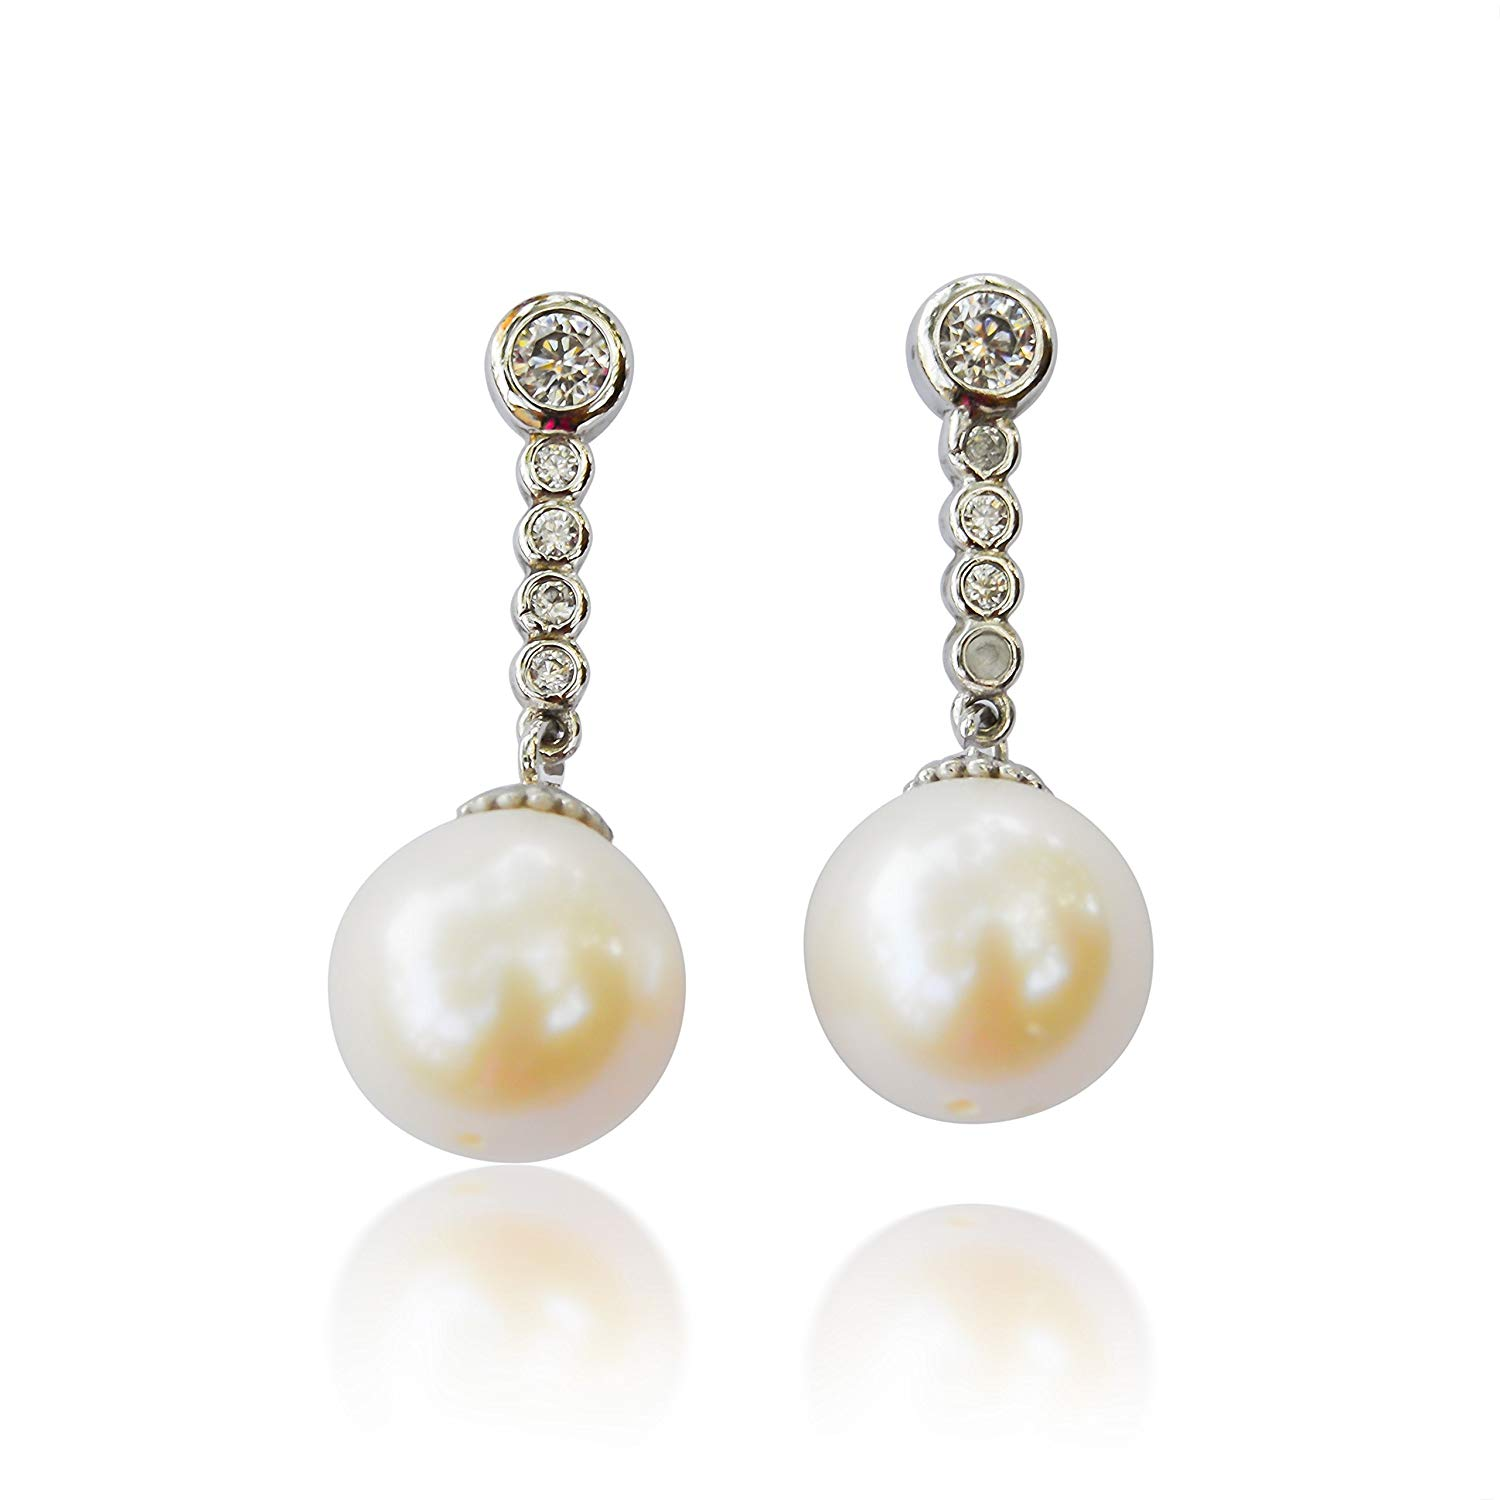 10K White Gold Dangling Earrings White Freshwater Cultured Pearl with 5 Round Cubic Zirconia Accents